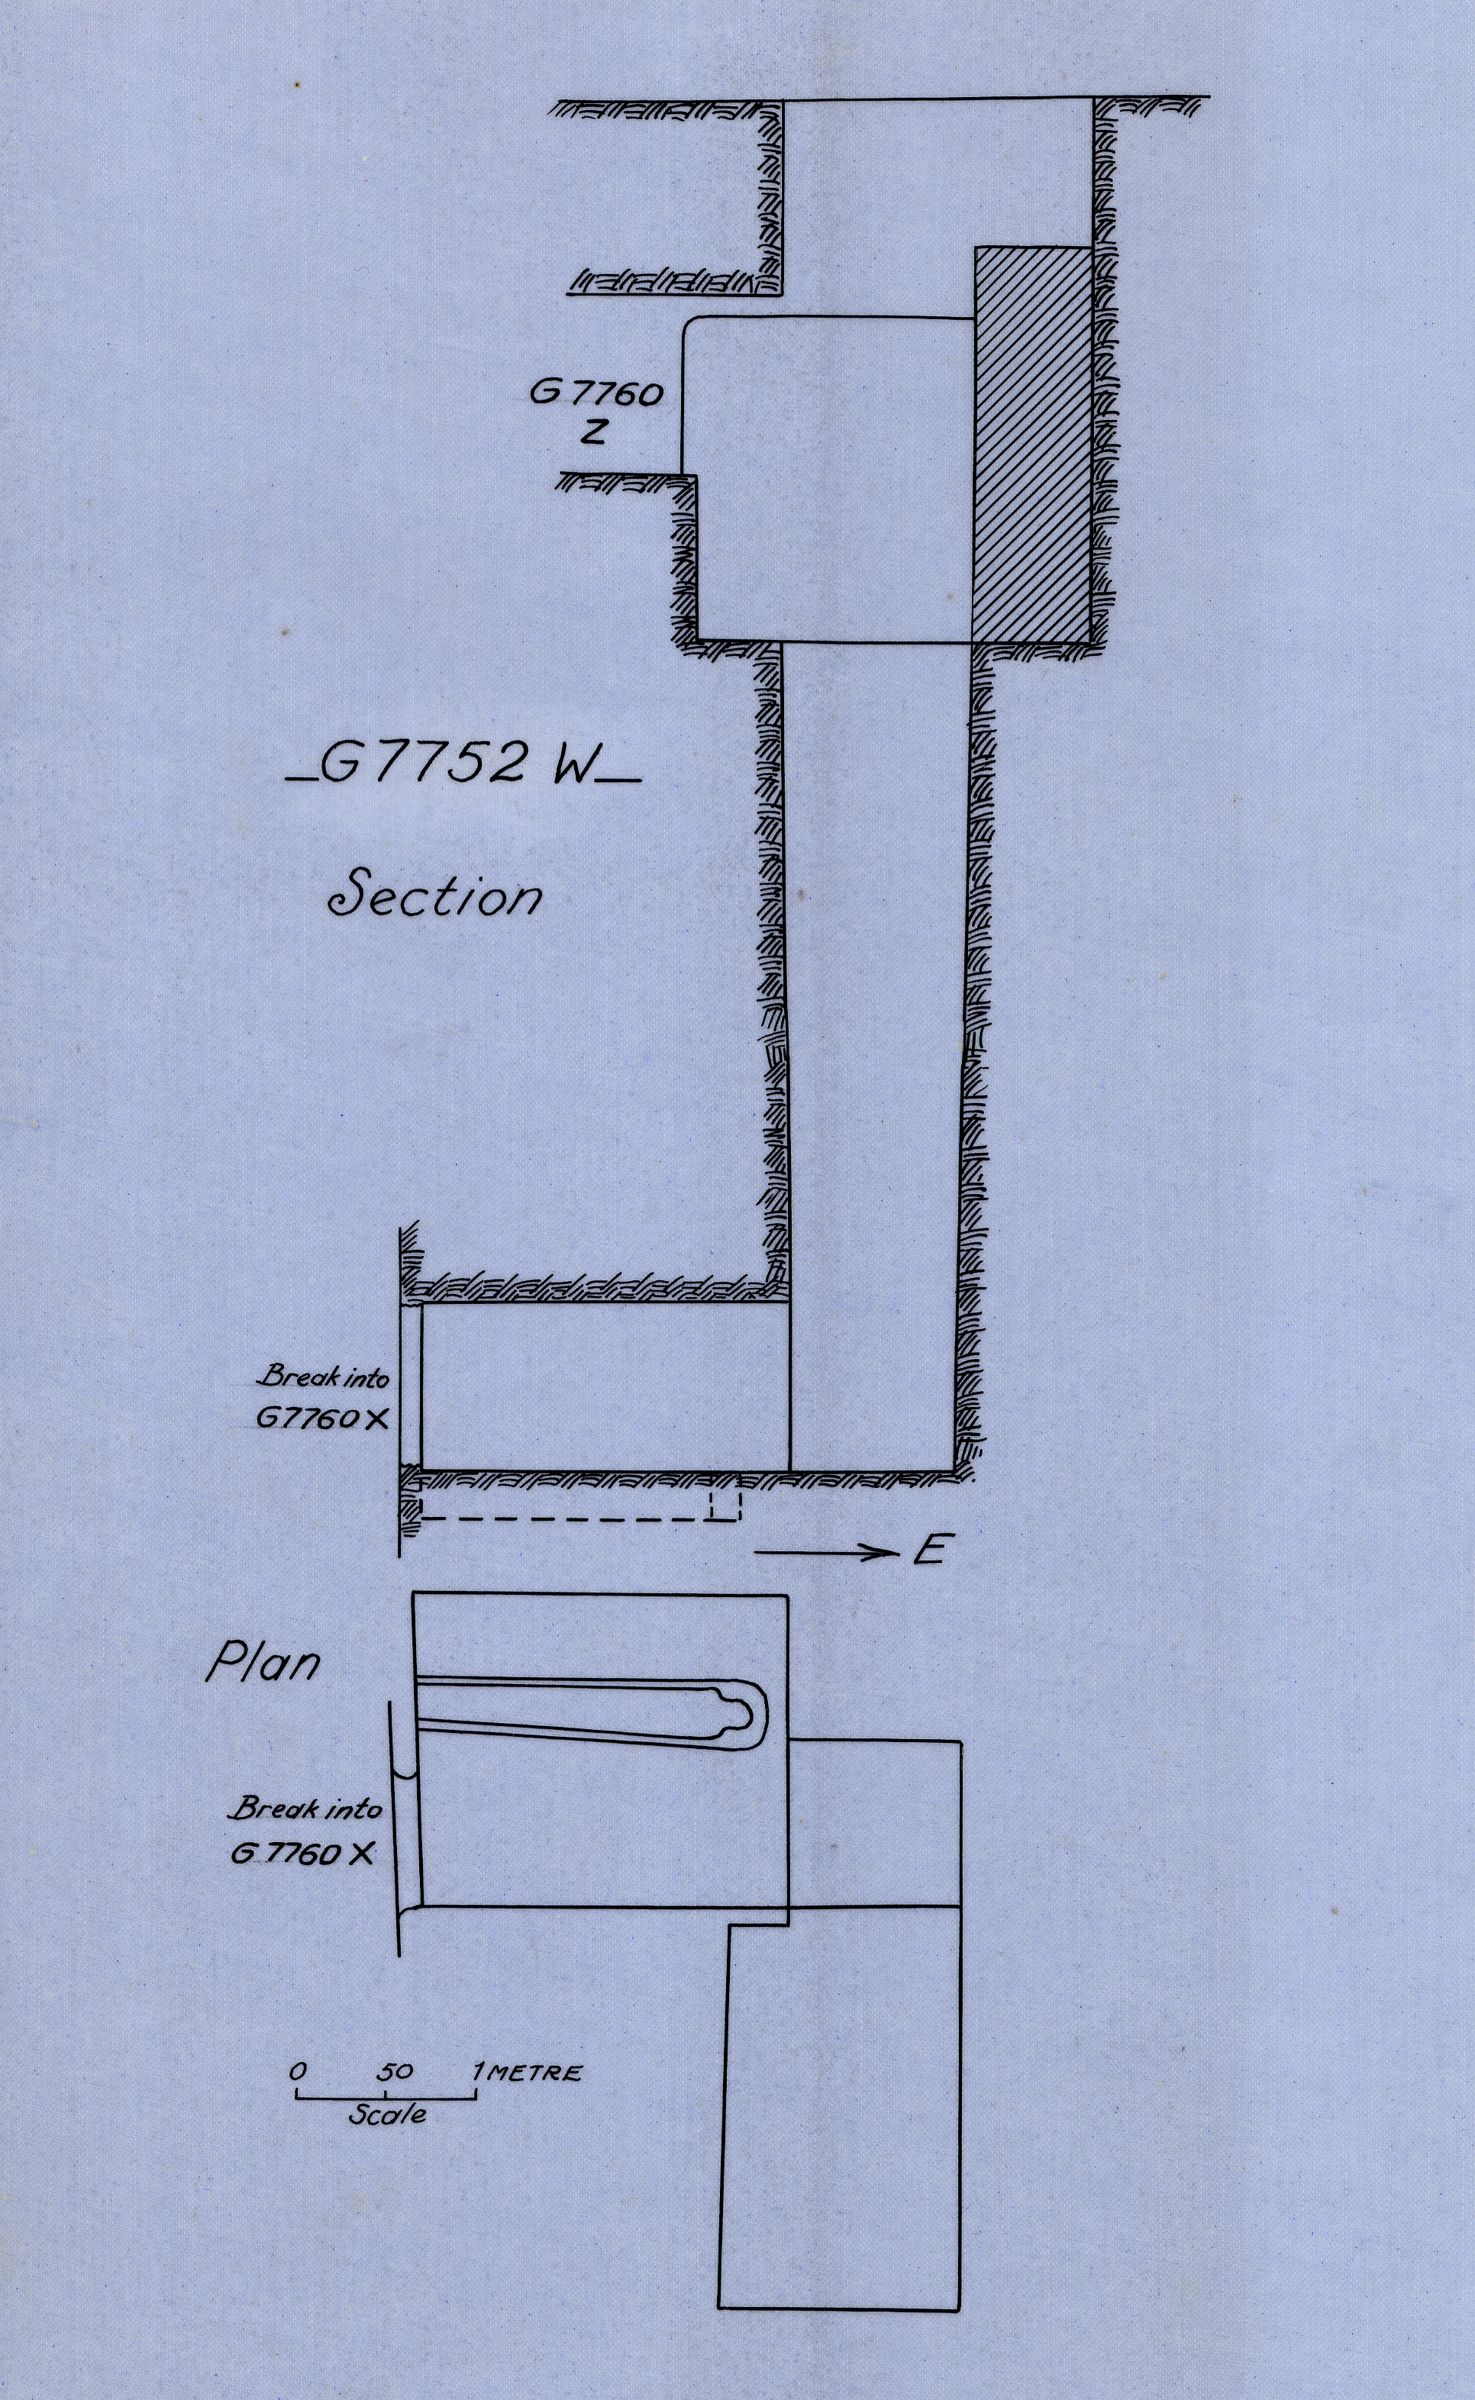 Maps and plans: G 7752, Shaft W